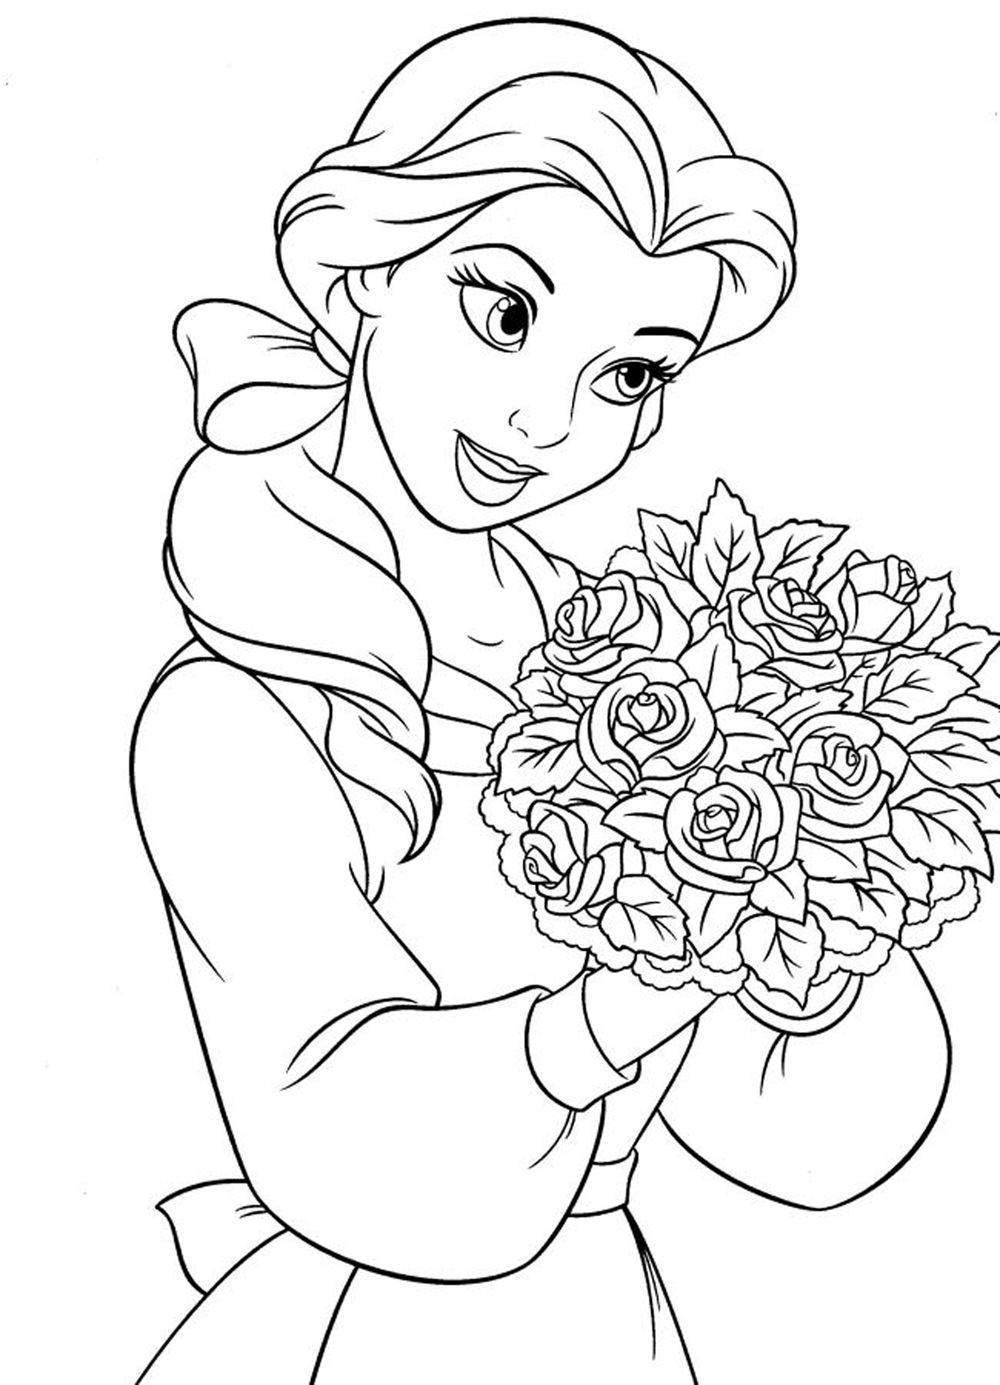 Disney Princess Coloring Book Arisbeth Cruz Hernandez